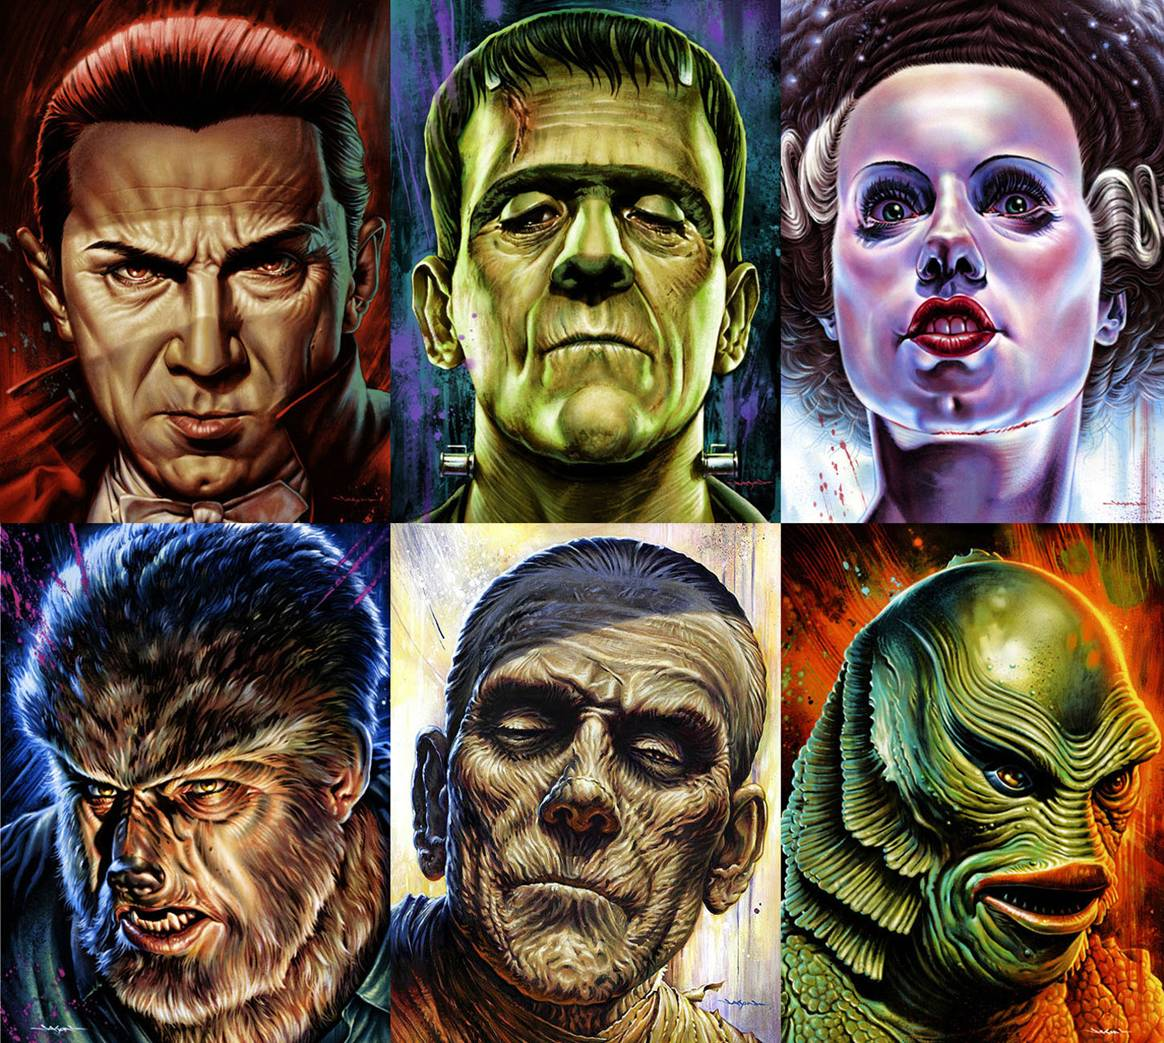 Universal Taking Horror Out of Universal Monster Movies 1164x1043